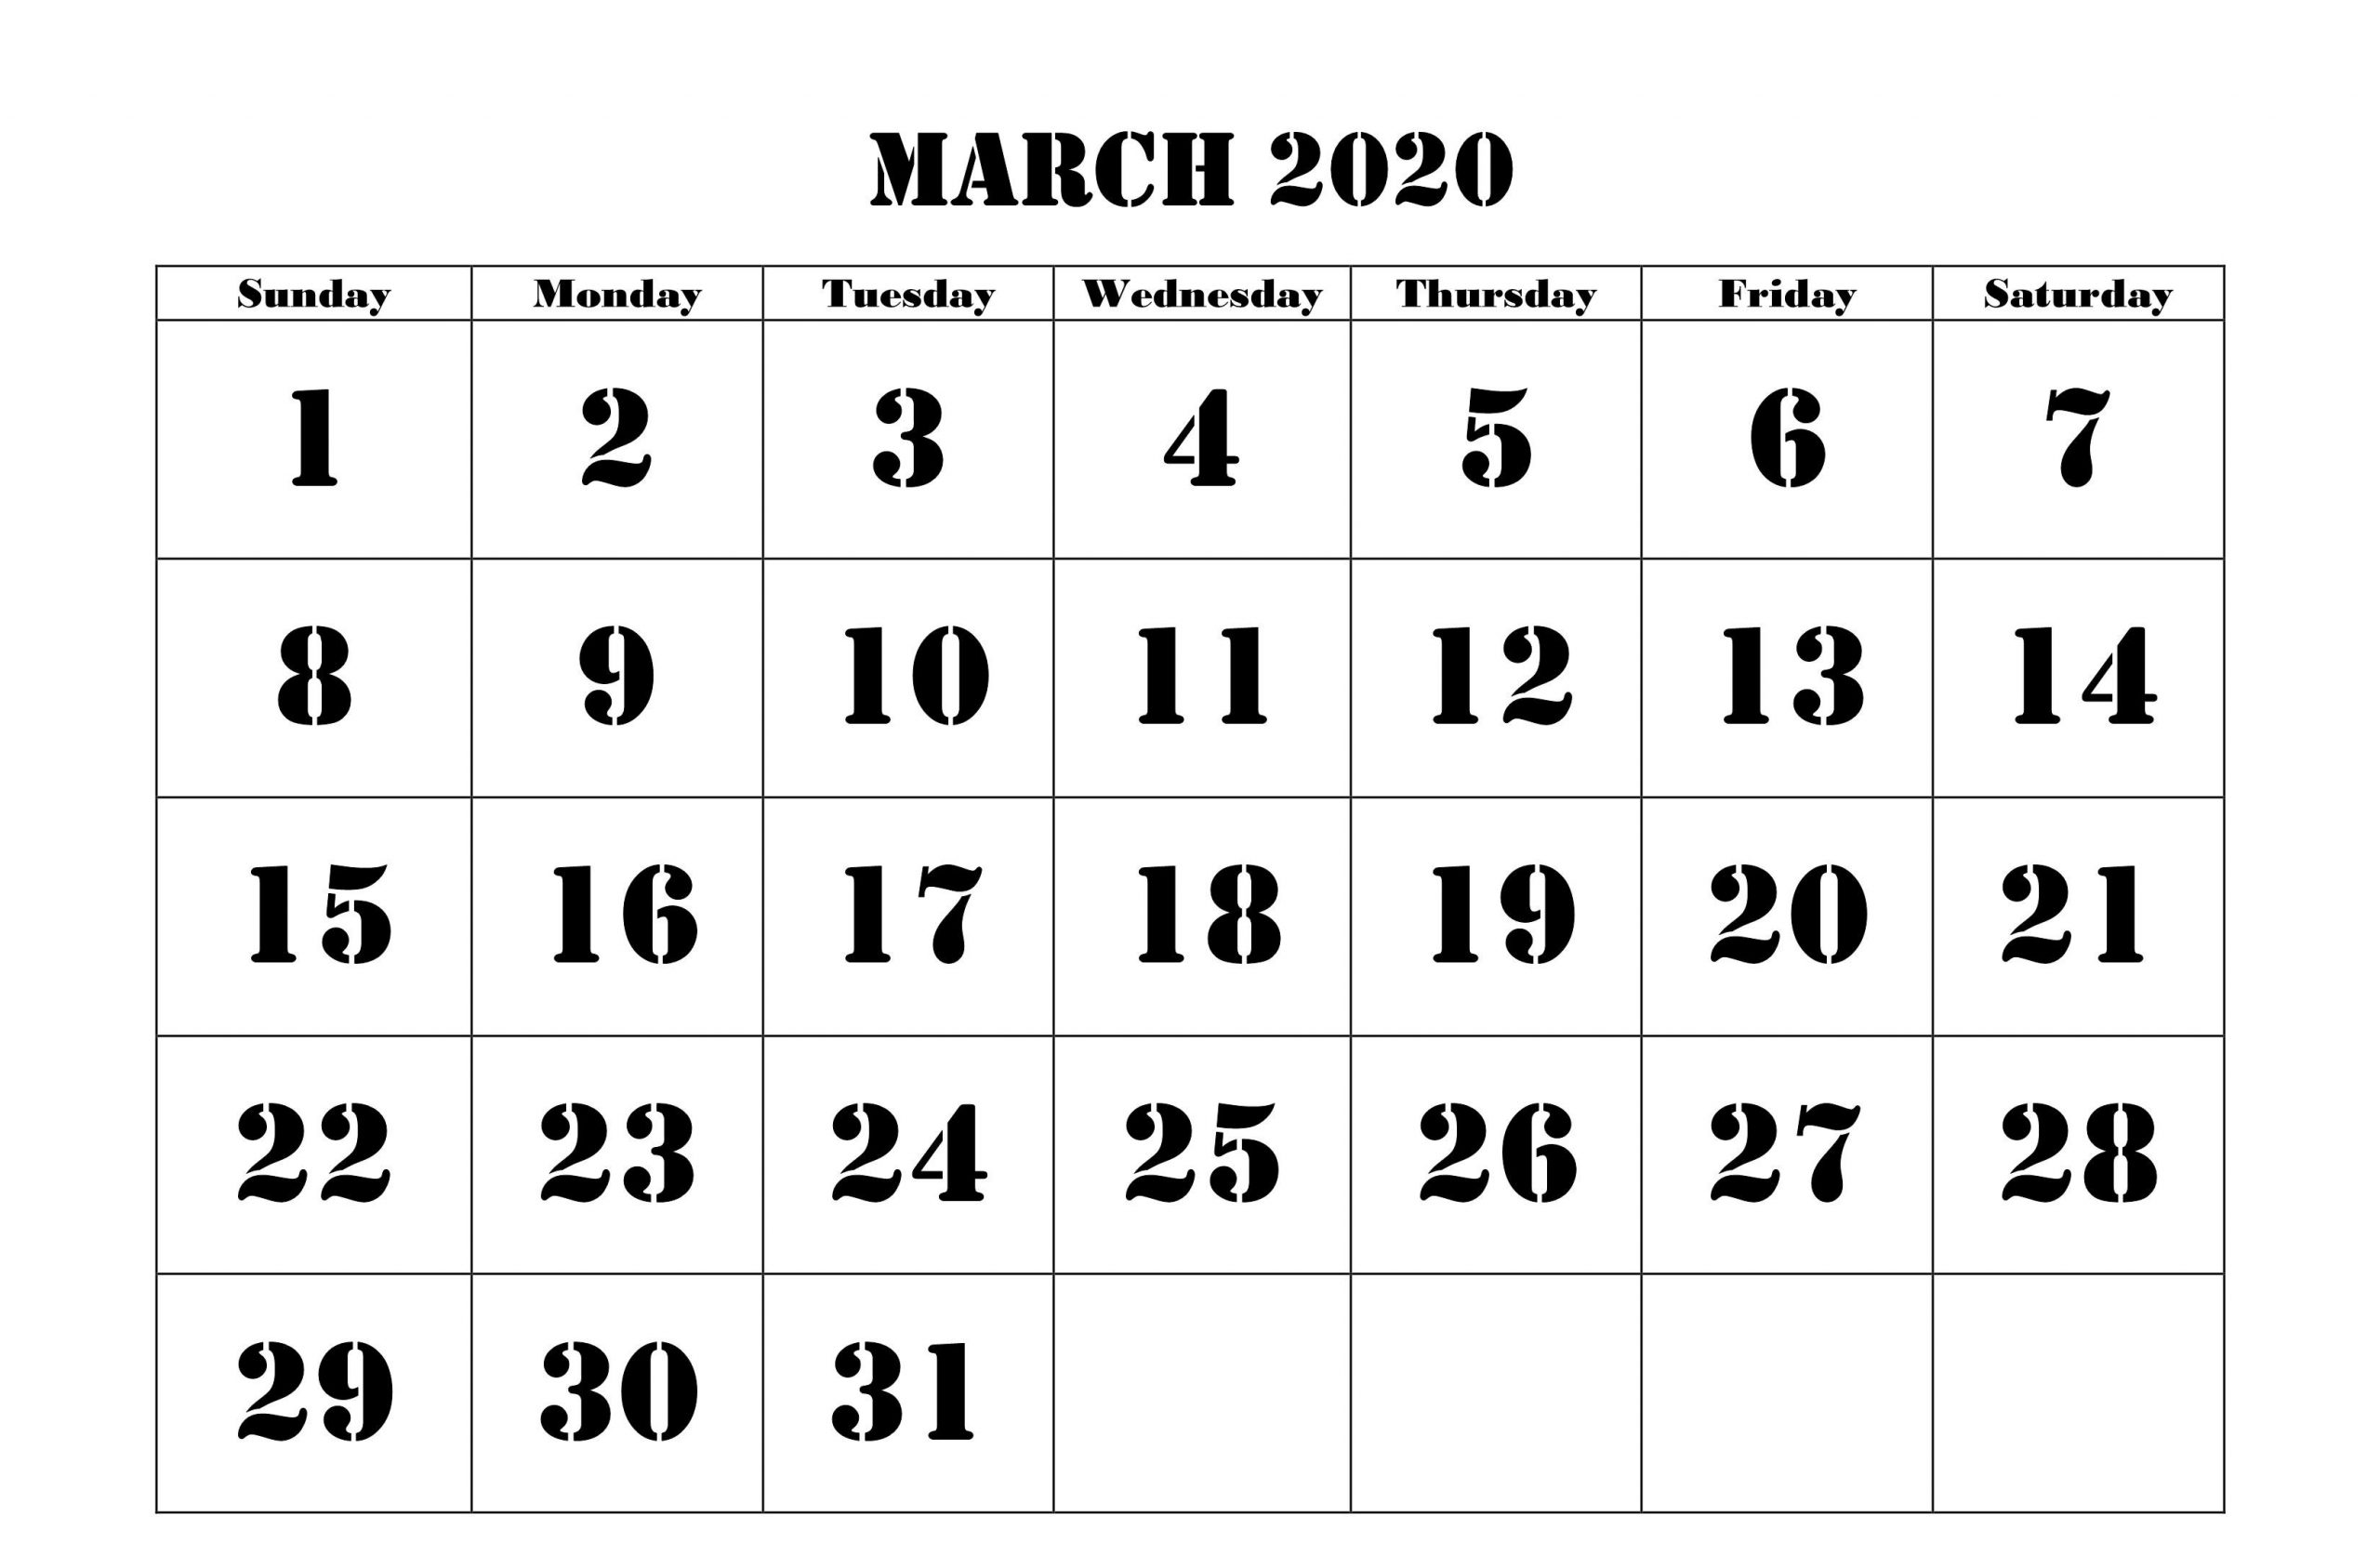 March 2020 Calendar Wallpapers - Wallpaper Cave-Printable Monthly Blank Calendars Showing Nfl Games